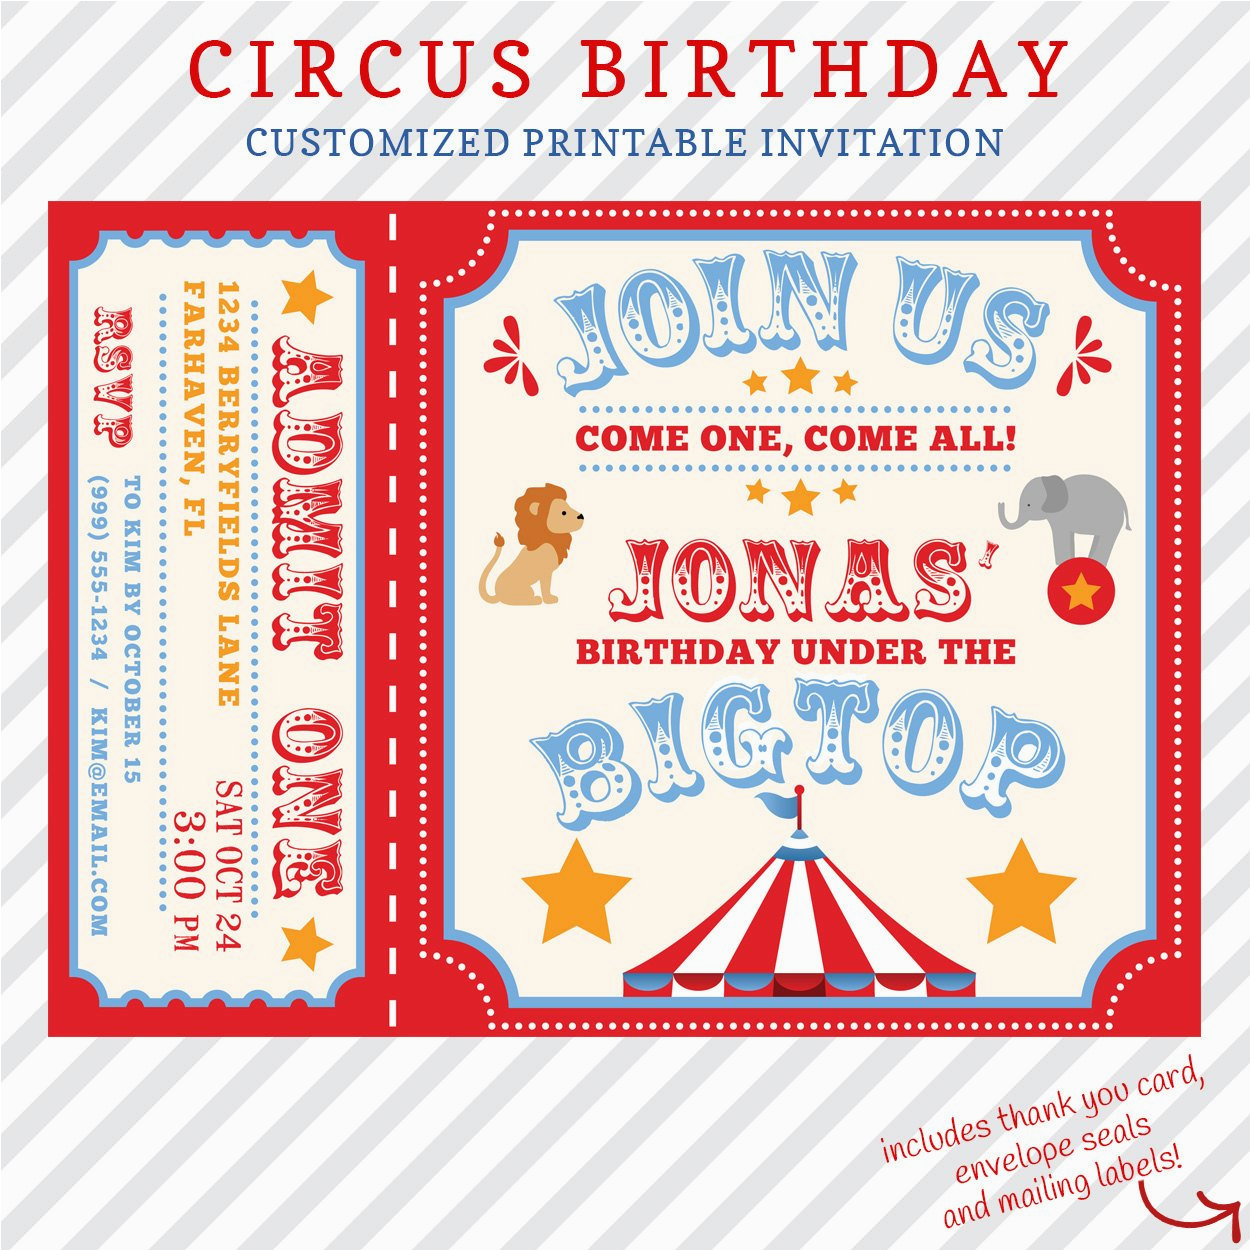 Personalized Birthday Invitations Free Circus Invitation Printable Custom With